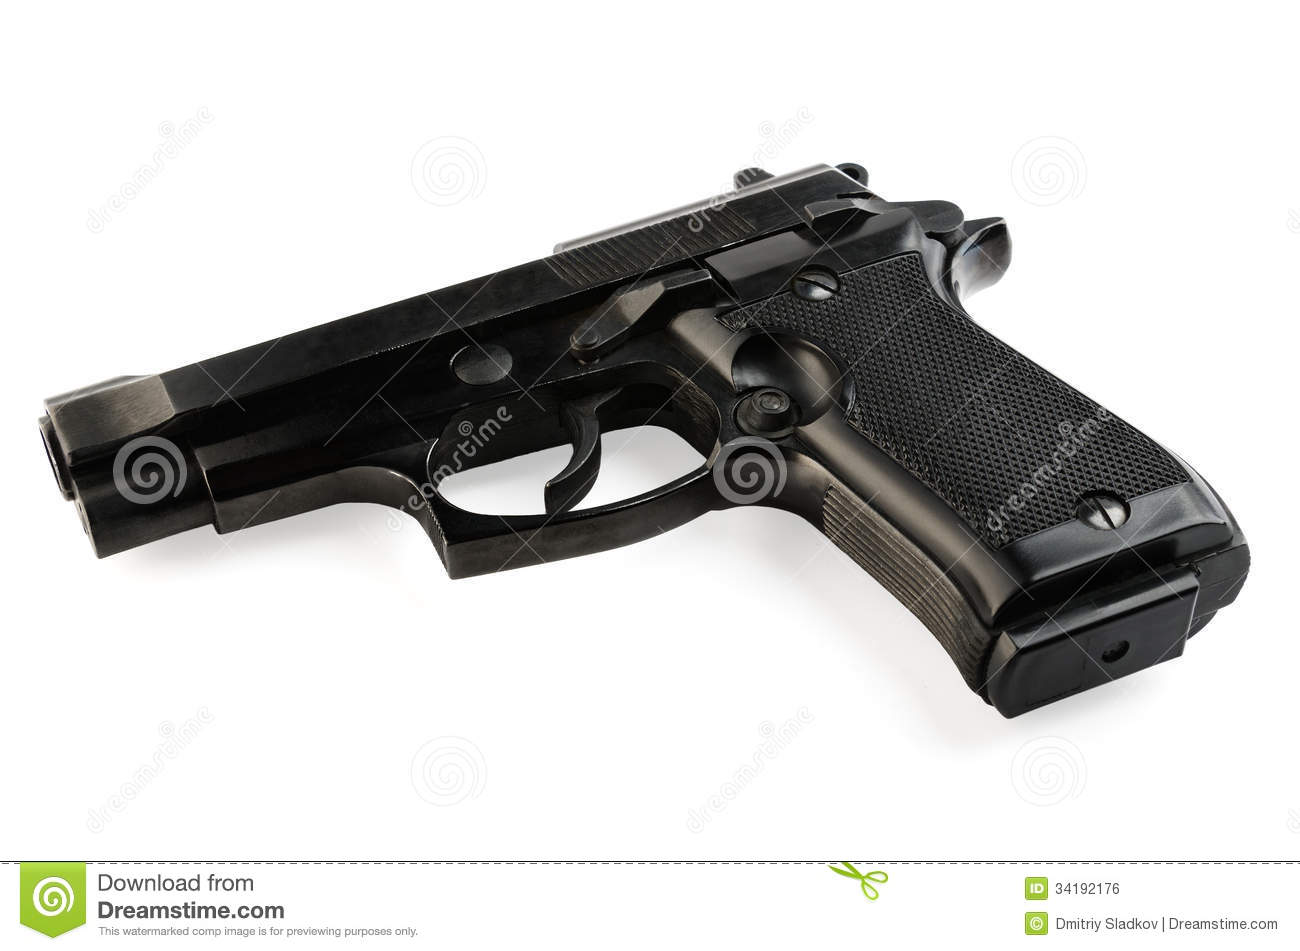 gun white background - photo #14